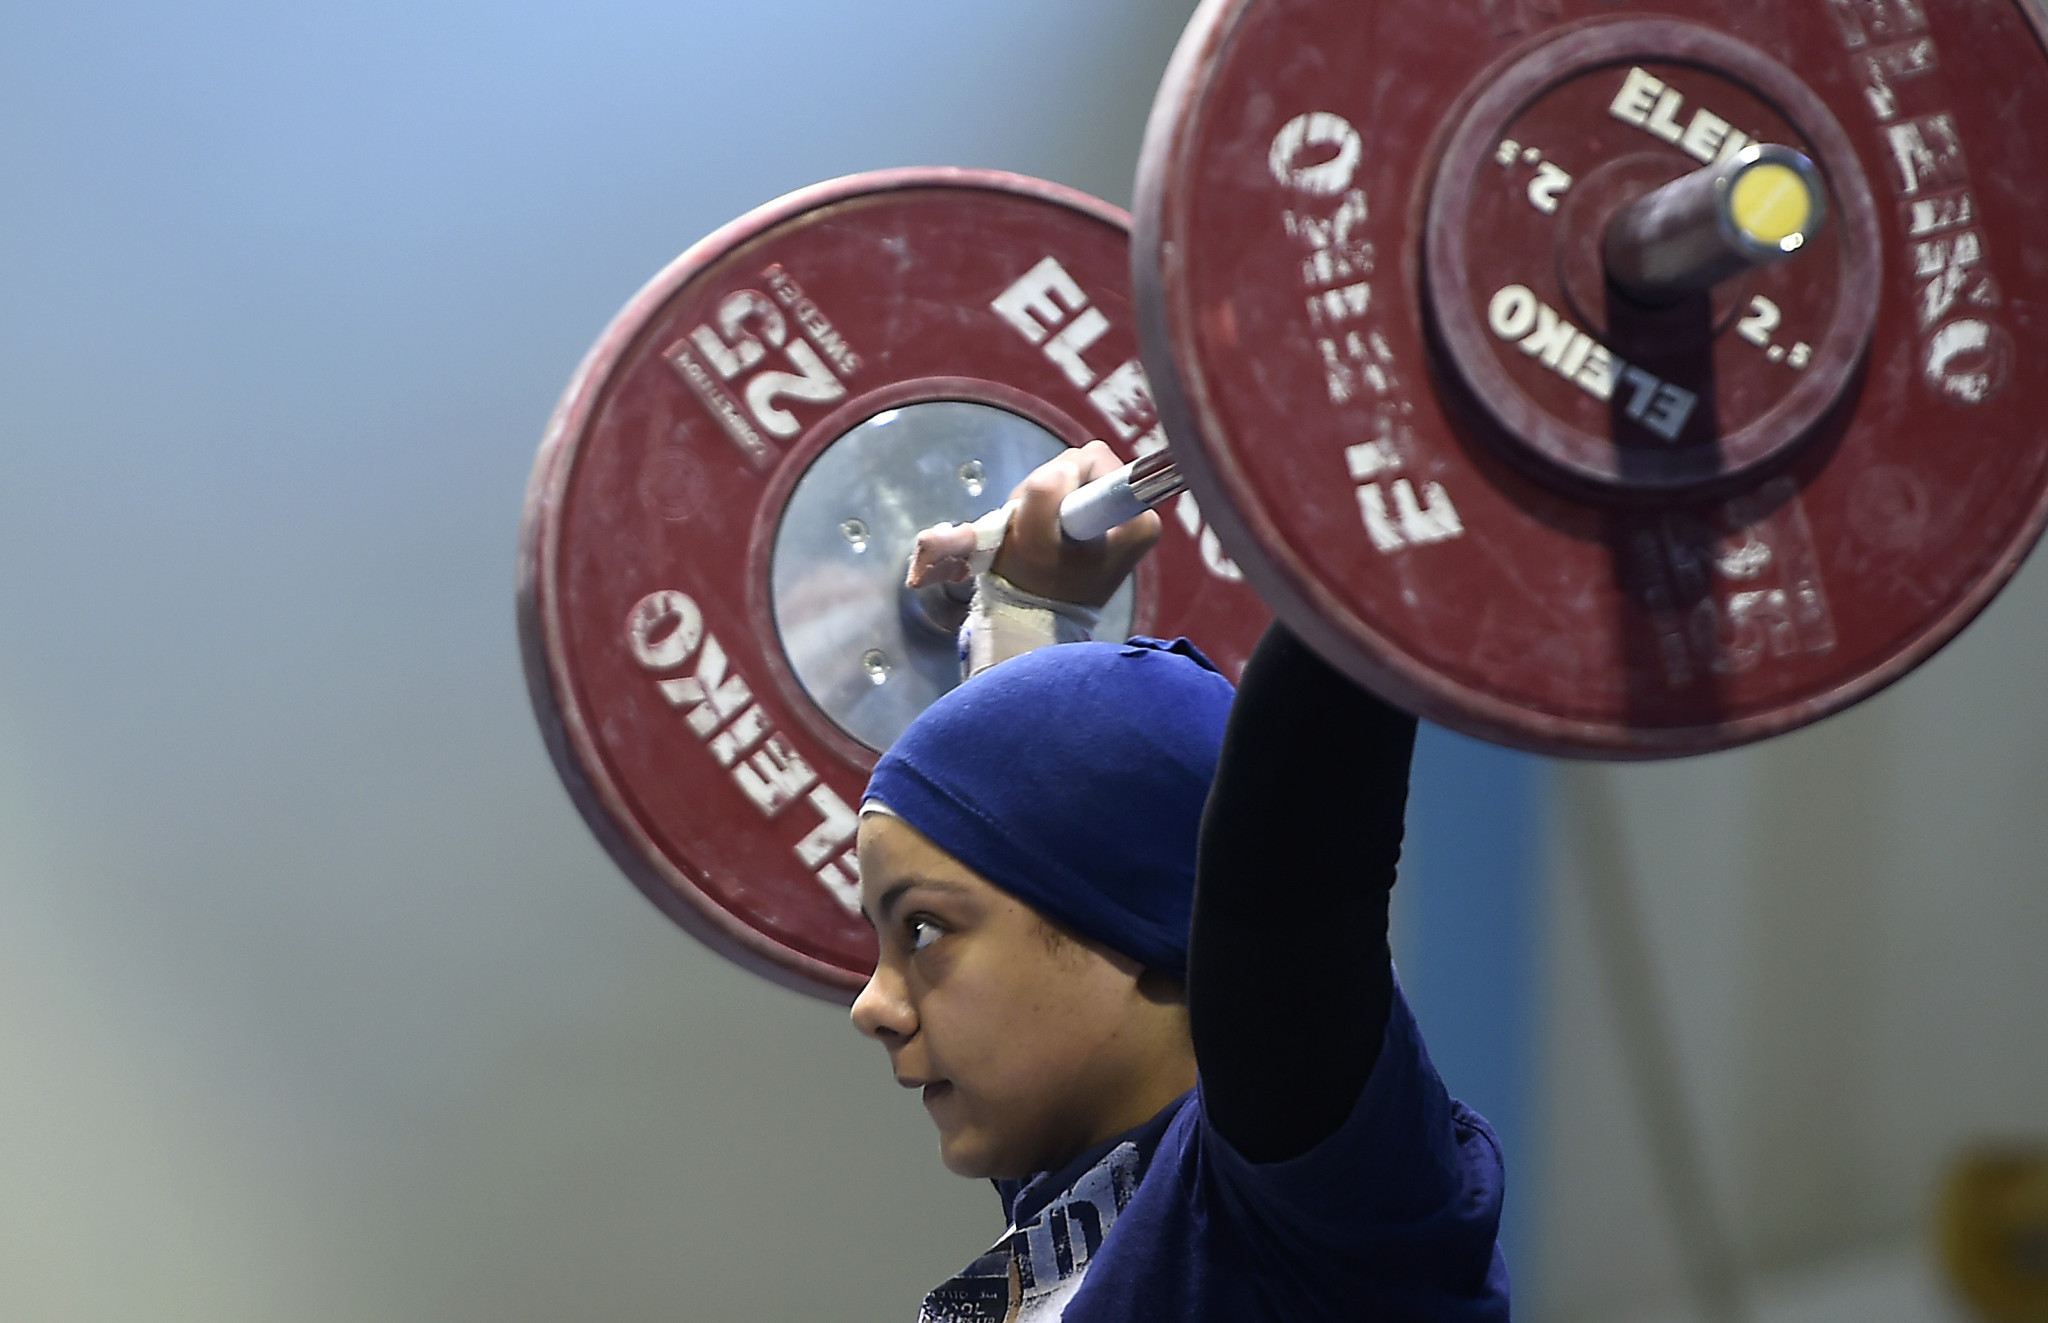 Sara Ahmed was the first female weightlifter from an Arab nation to stand on an Olympic podium ©Getty Images